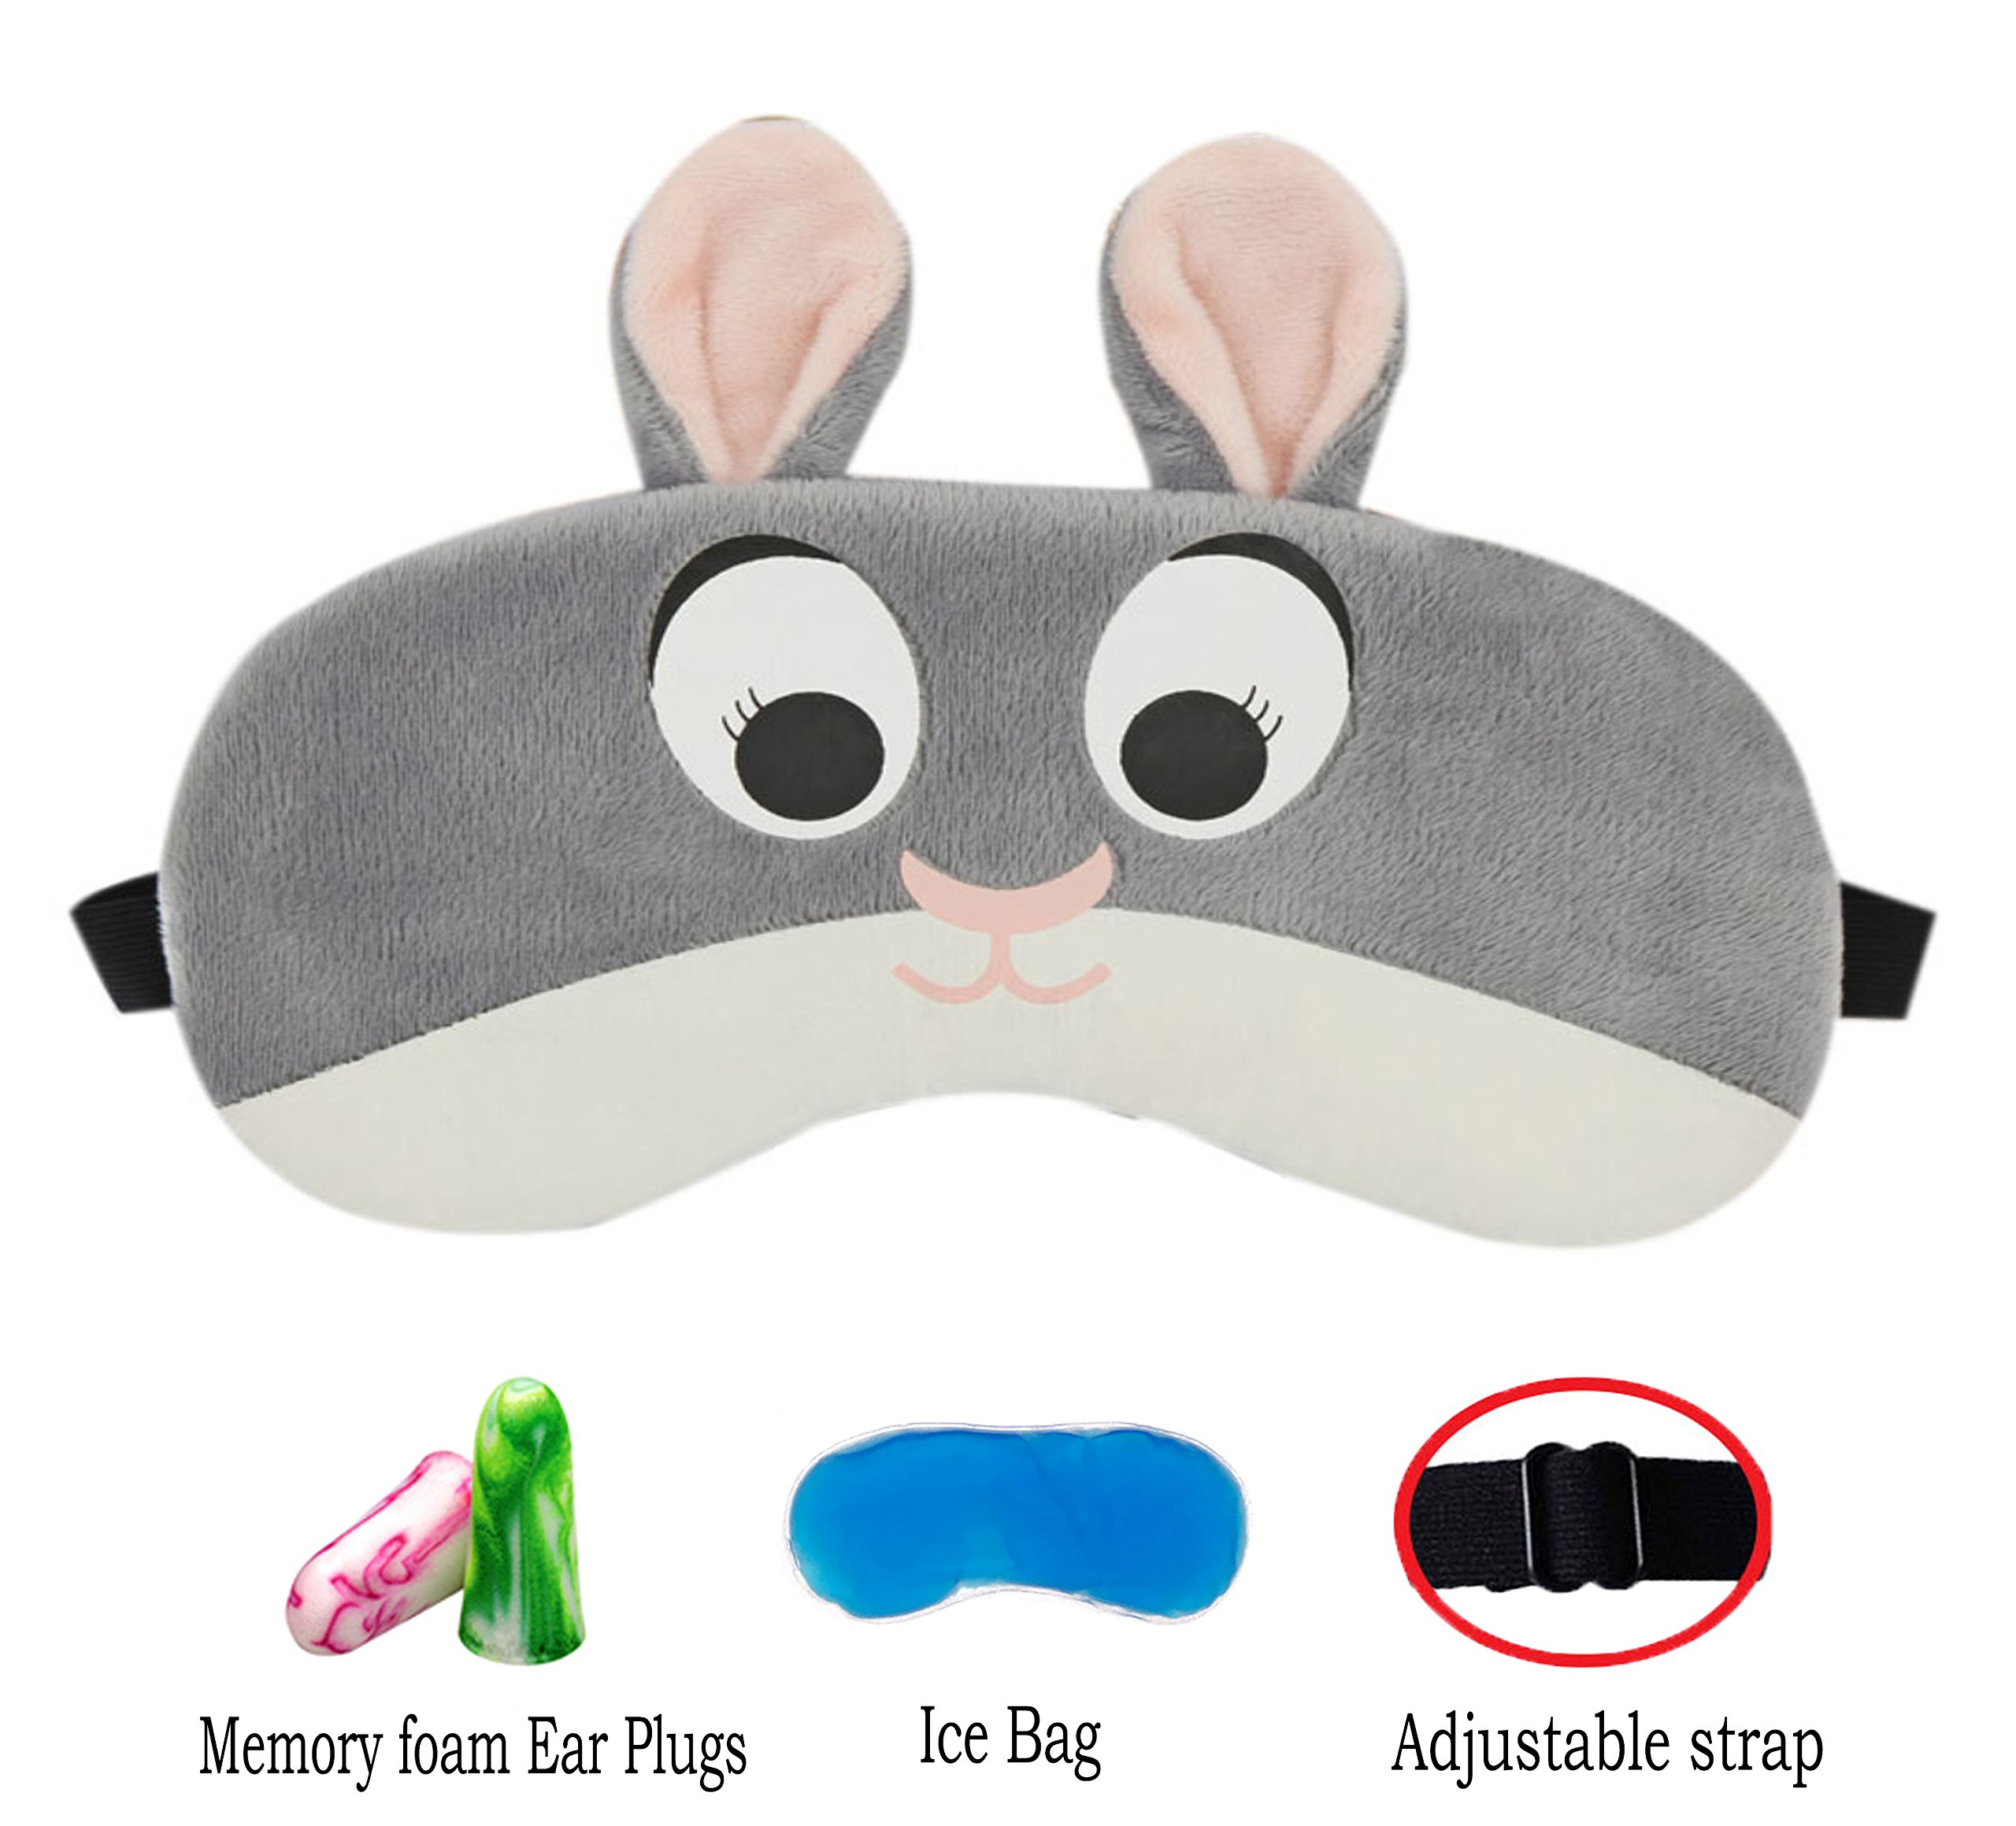 Cute Animal Sleep Mask by Hitos | Eye Mask with Gel Pad, Super Soft and Light Sleep Mask with Adjustable Strap for Insomnia, Sleep and Shift Work Sleep for Women and Kids (Bunny Judy)